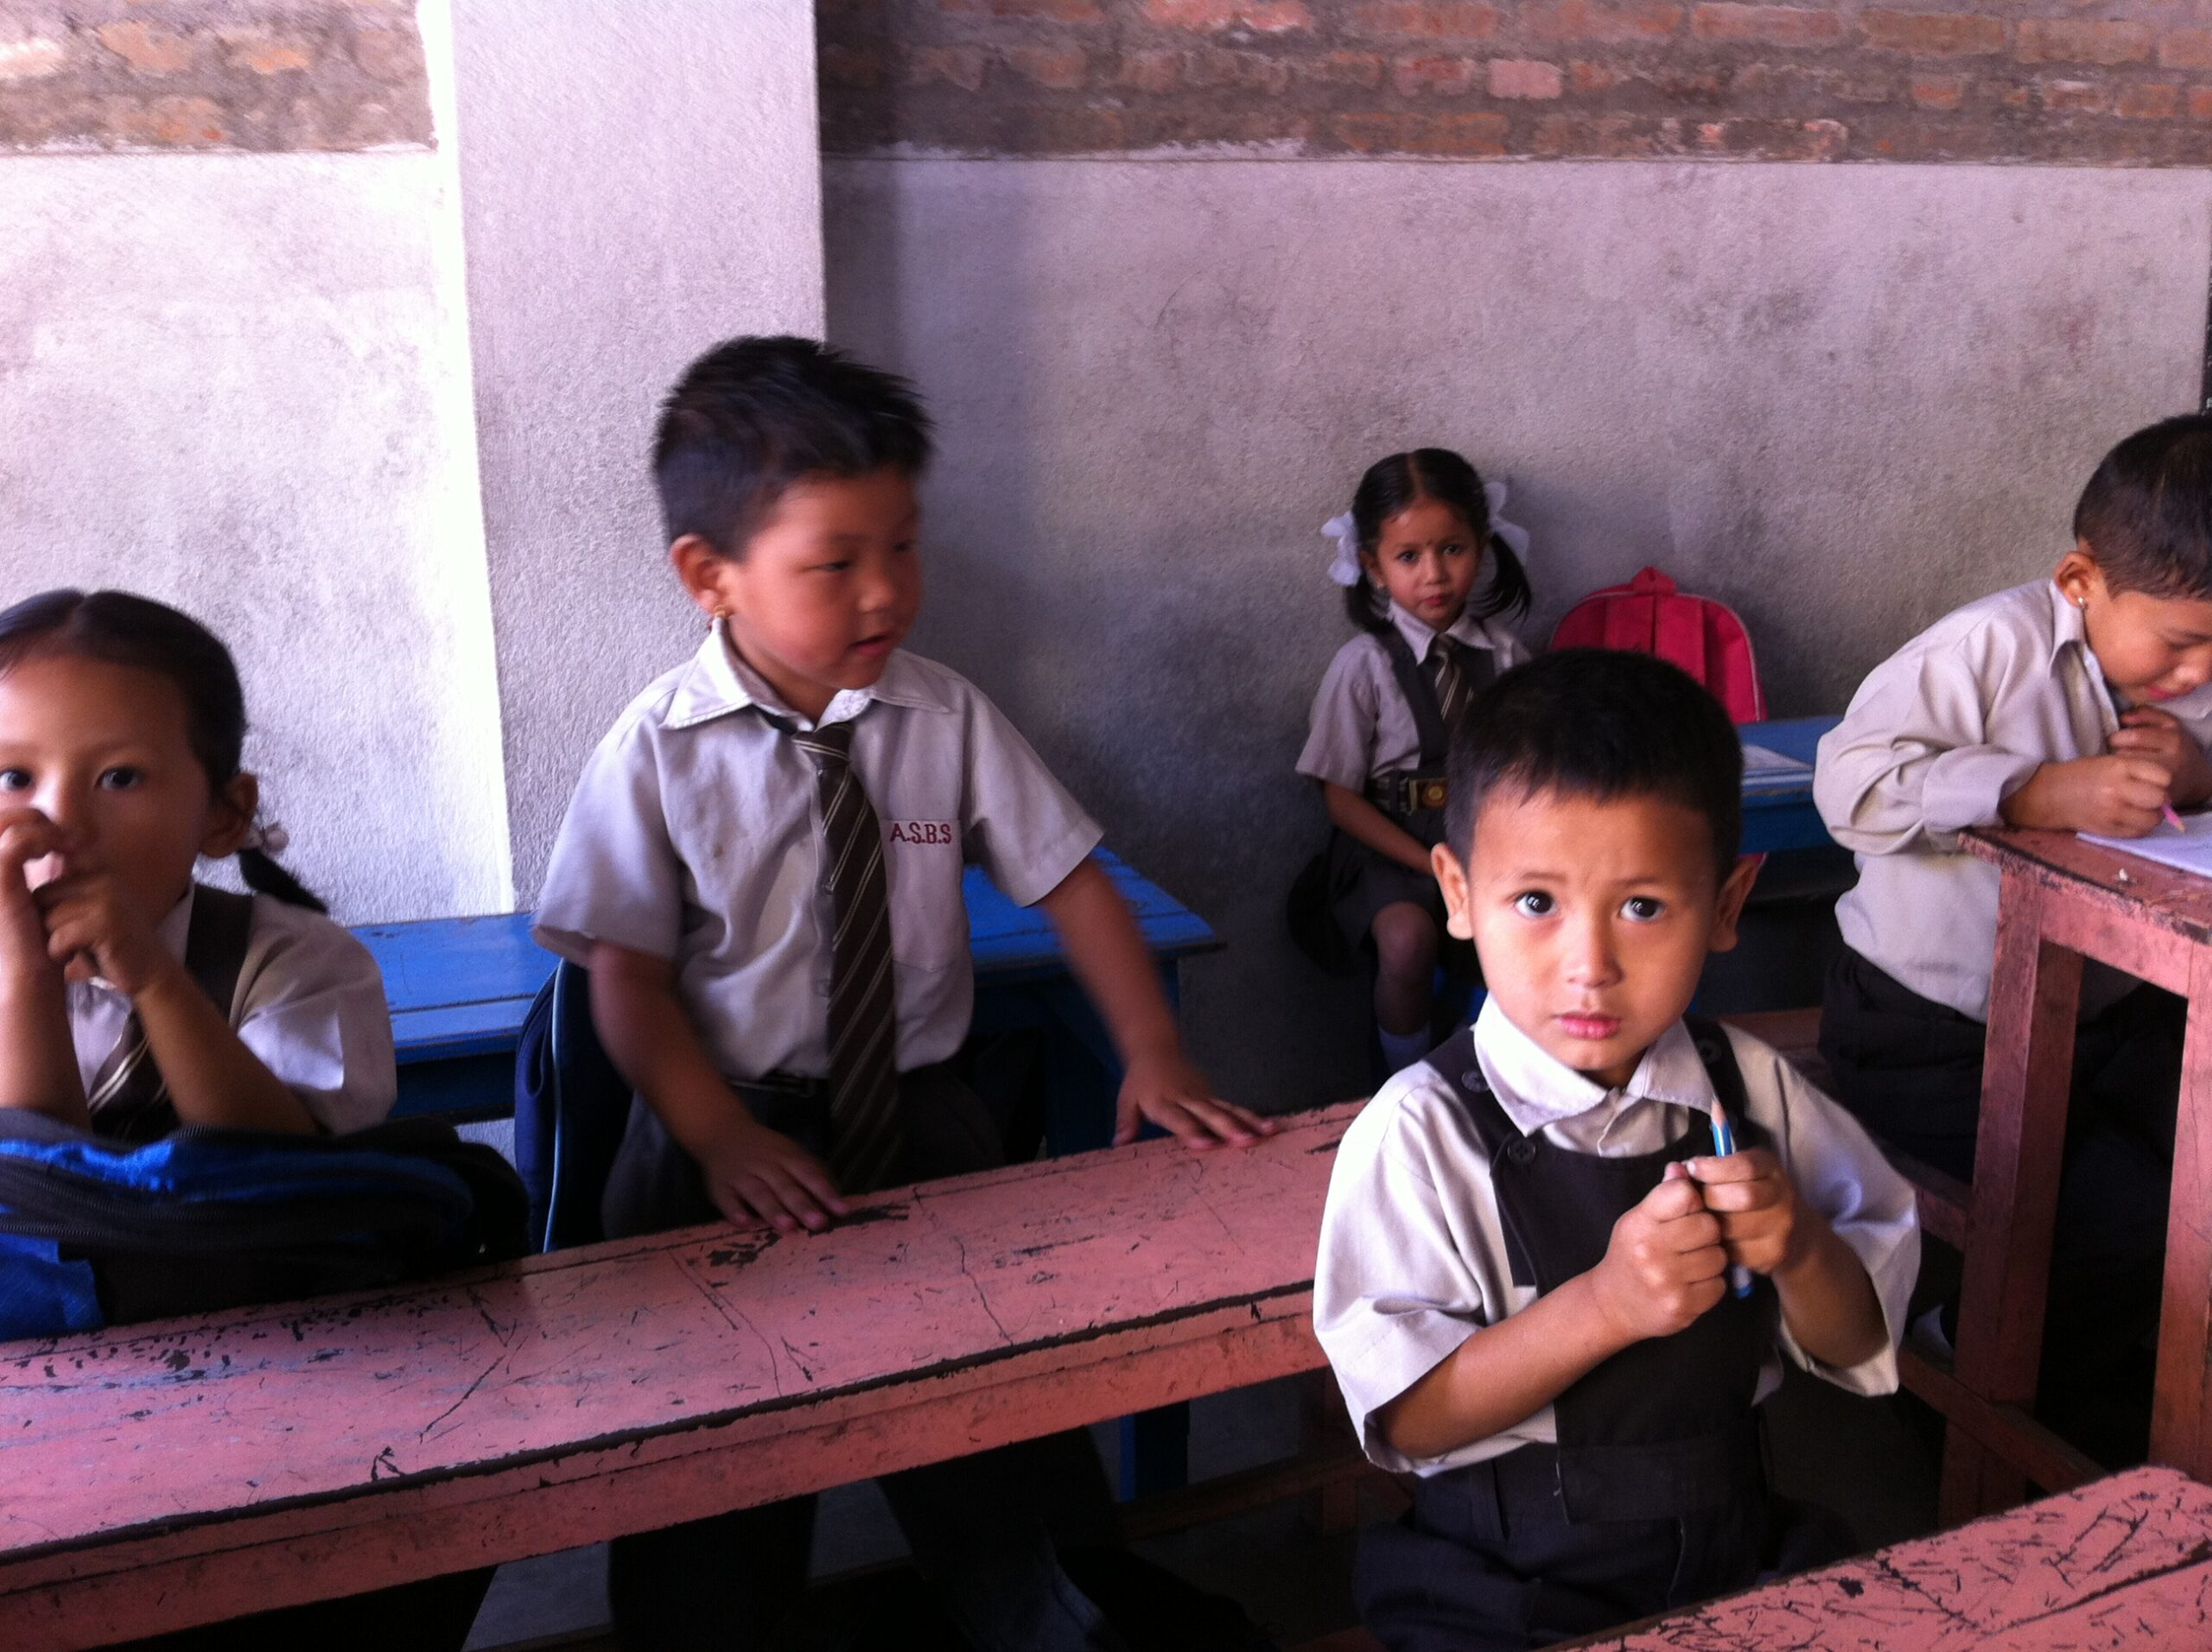 Schoolboy Looks to Nepal's Army With New Pride